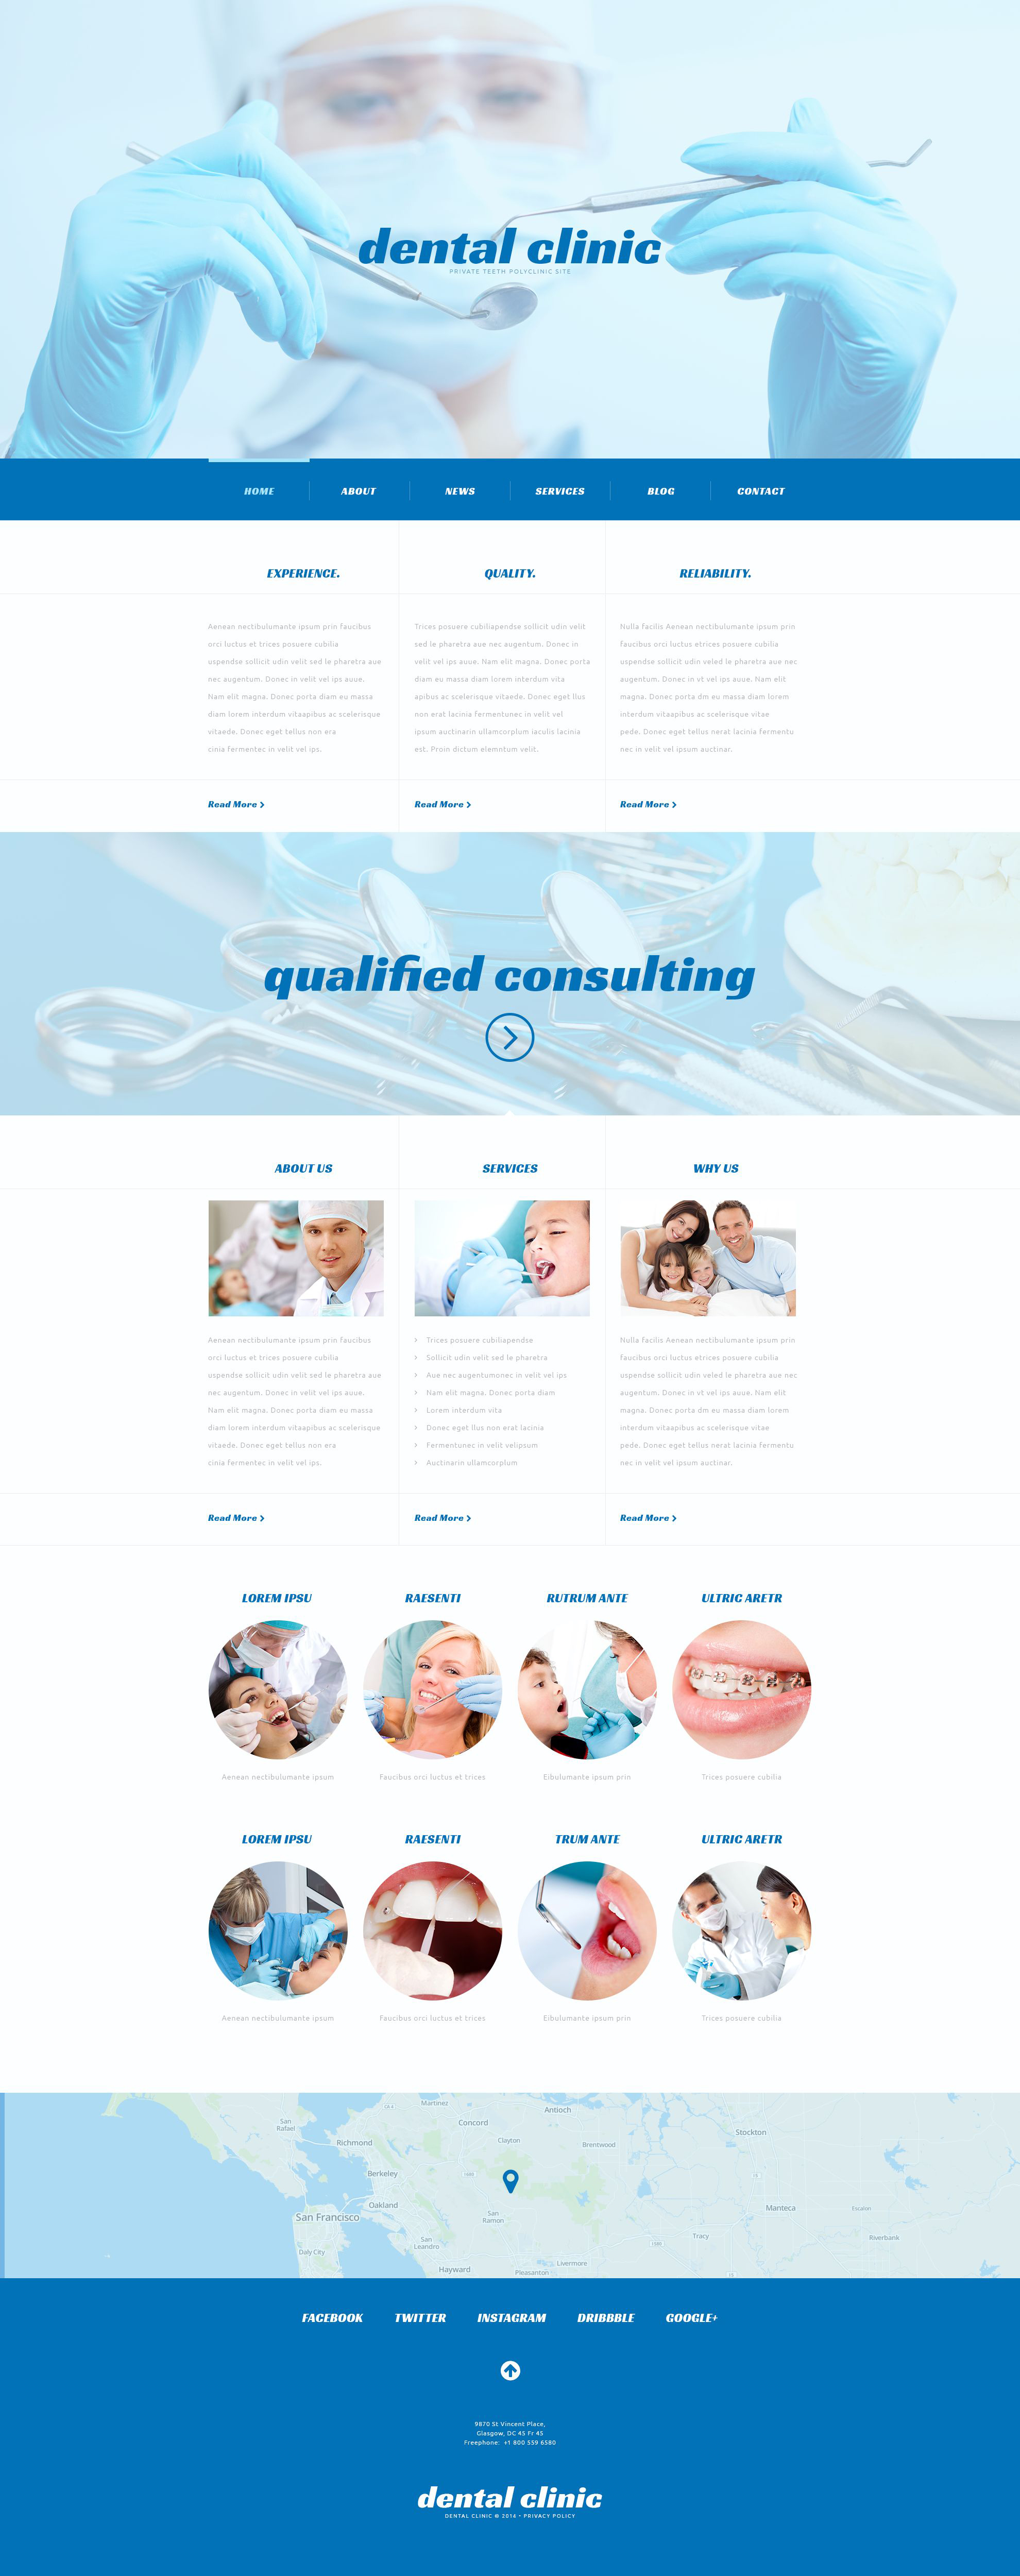 The Dentist Teeth WordPress Design 54041, one of the best WordPress themes of its kind (medical, most popular), also known as dentist teeth WordPress template, policlinic WordPress template, bright smile WordPress template, doctor WordPress template, services WordPress template, dentistry WordPress template, cosmetic care WordPress template, health WordPress template, prices WordPress template, bleaching WordPress template, prosthesis WordPress template, crown of  tooth WordPress template, implant WordPress template, clients WordPress template, testimonials WordPress template, pain WordPress template, painless WordPress template, treatment solution WordPress template, technology WordPress template, dental WordPress template, services WordPress template, stopping WordPress template, caries WordPress template, parodontosis and related with dentist teeth, policlinic, bright smile, doctor, services, dentistry, cosmetic care, health, prices, bleaching, prosthesis, crown of  tooth, implant, clients, testimonials, pain, painless, treatment solution, technology, dental, services, stopping, caries, parodontosis, etc.